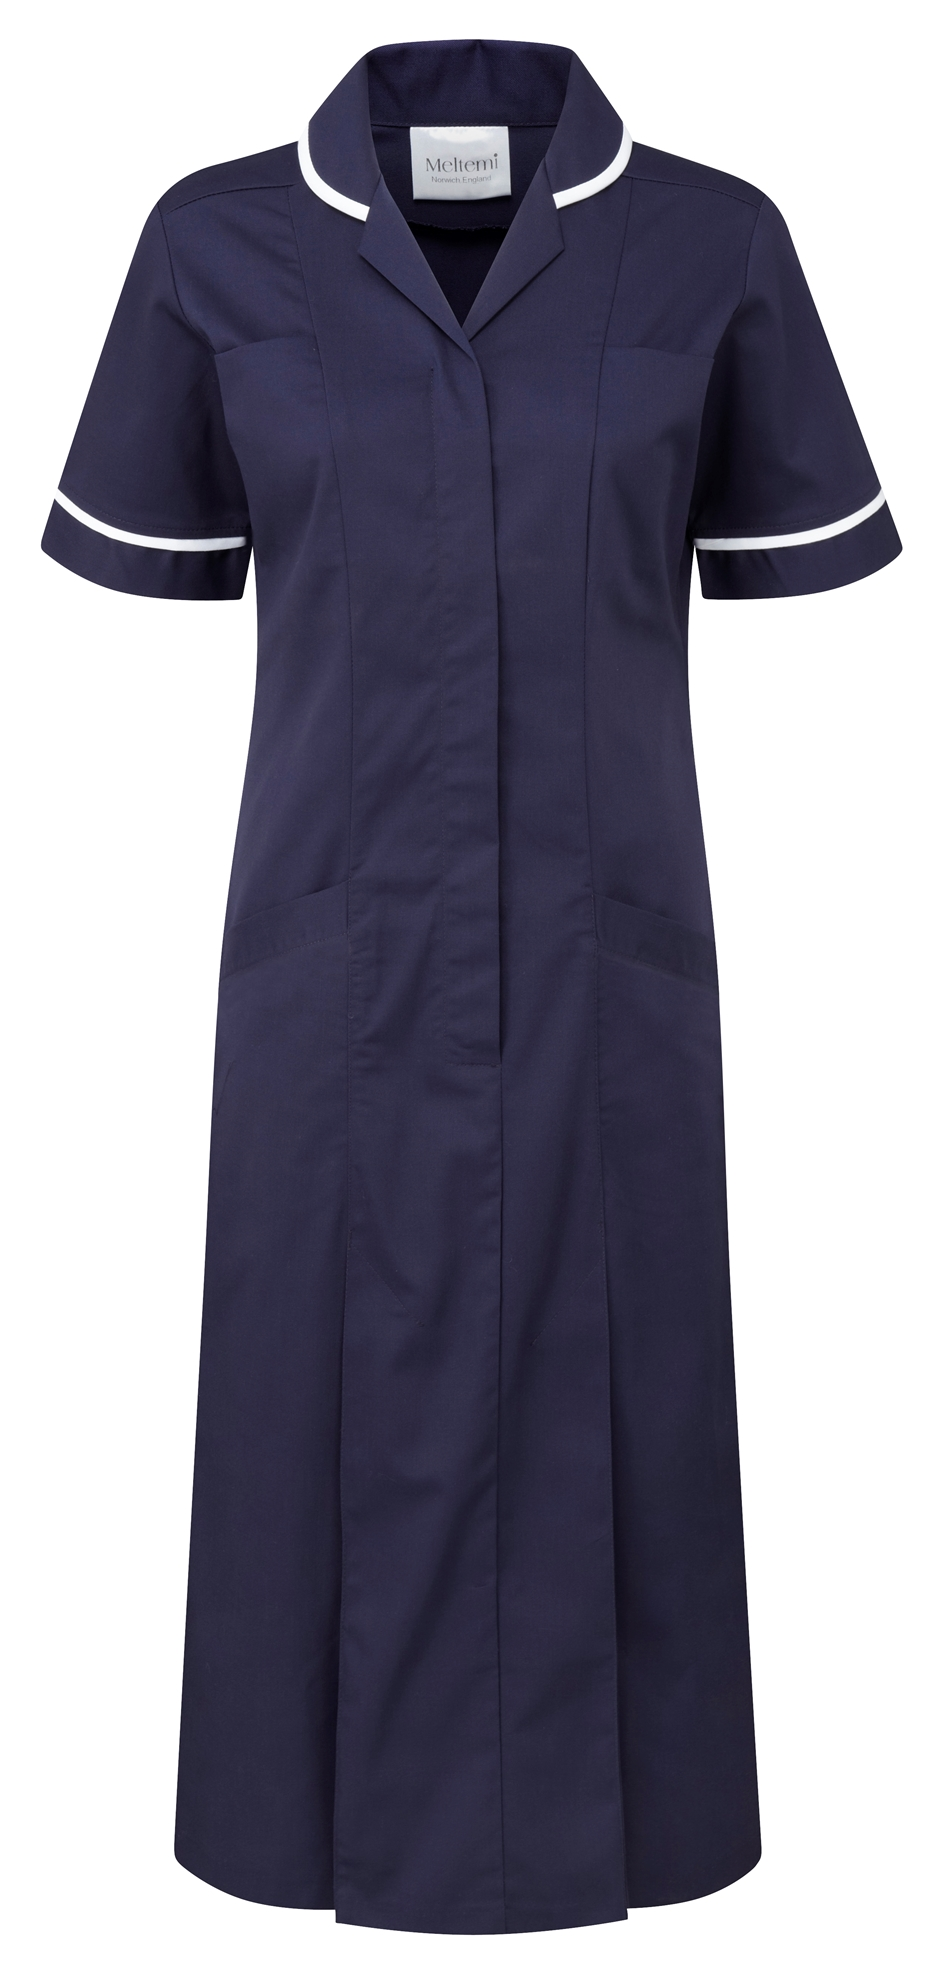 Picture of Plain Colour Dress - Navy/White